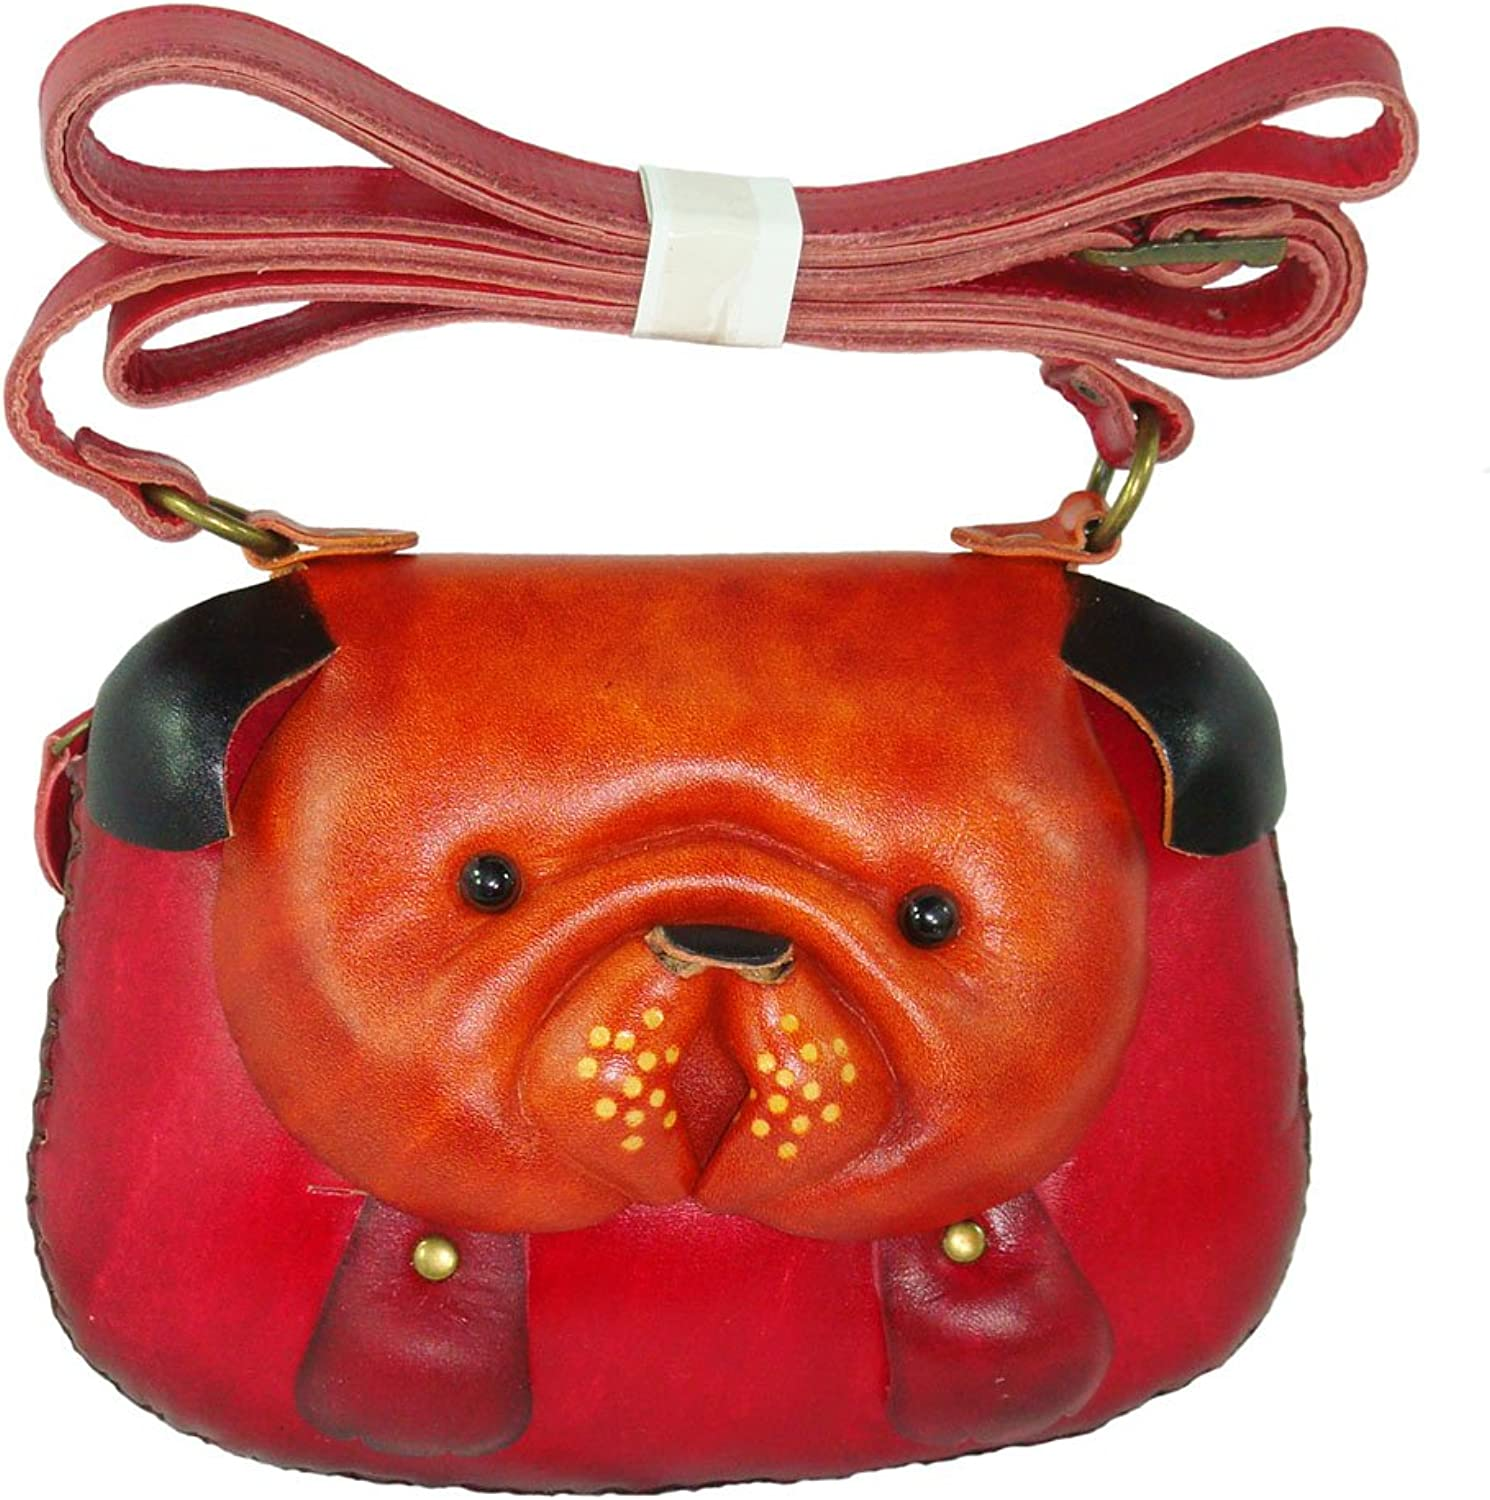 Genuine Leather Shoulder Bag,Bull Dog Face Cover,a Unique Satchel